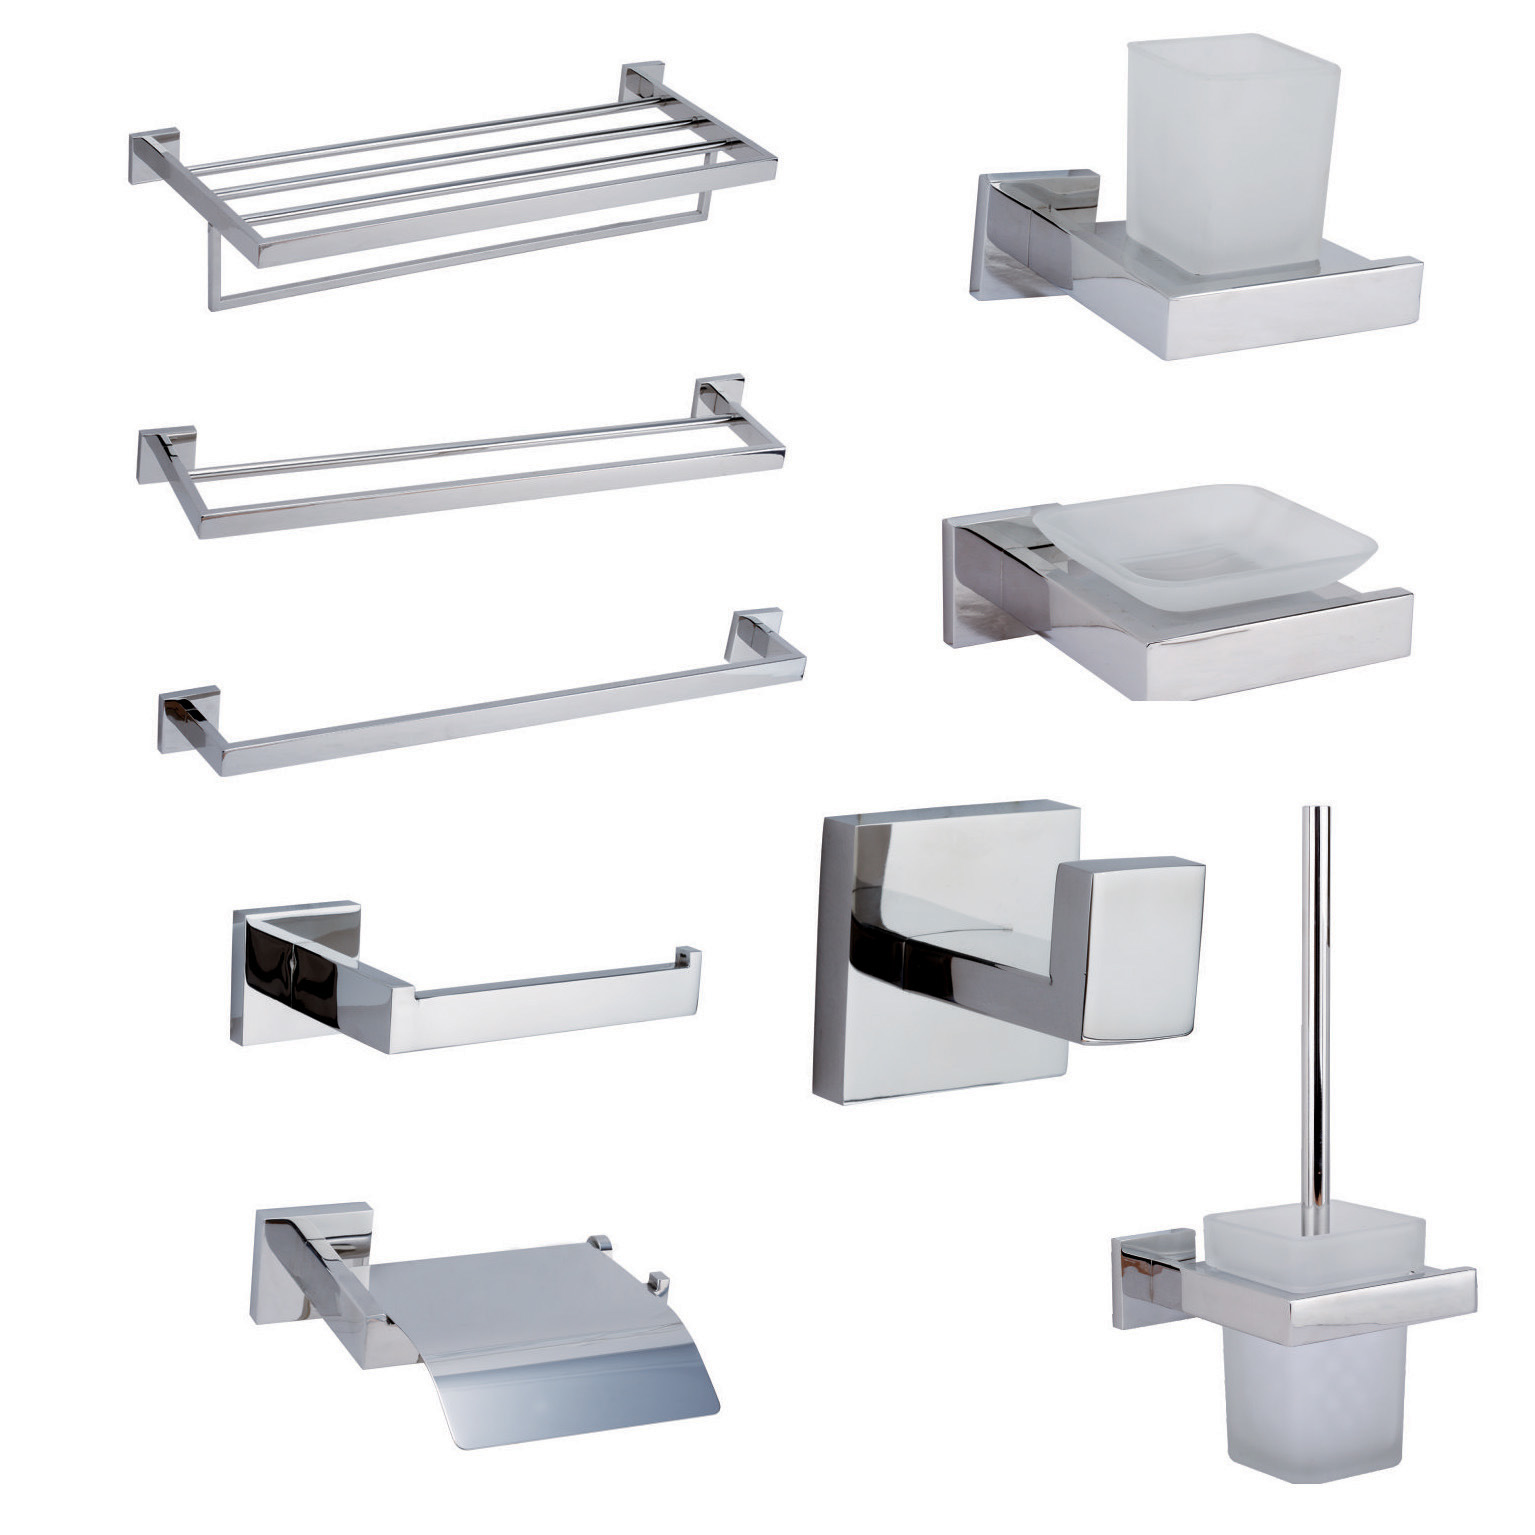 China New Square Design Stainless Steel 304 Bathroom Accessories ...